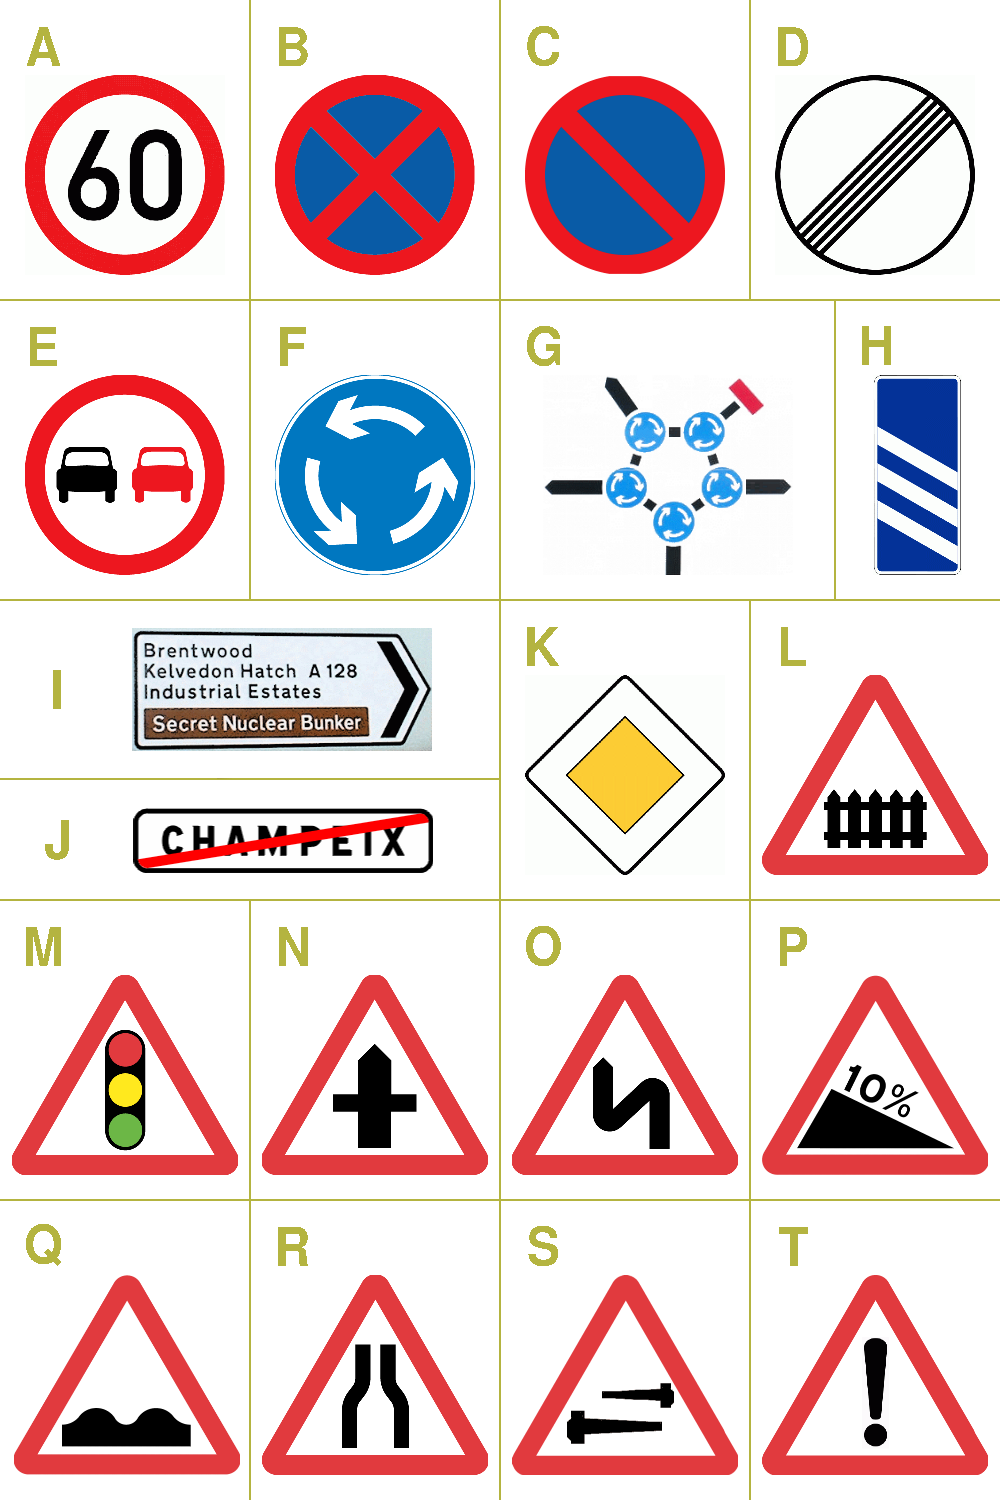 Margaret calvert designed signs symbols and type for the british margaret calvert designed signs symbols and type for the british road system in 1963 biocorpaavc Choice Image